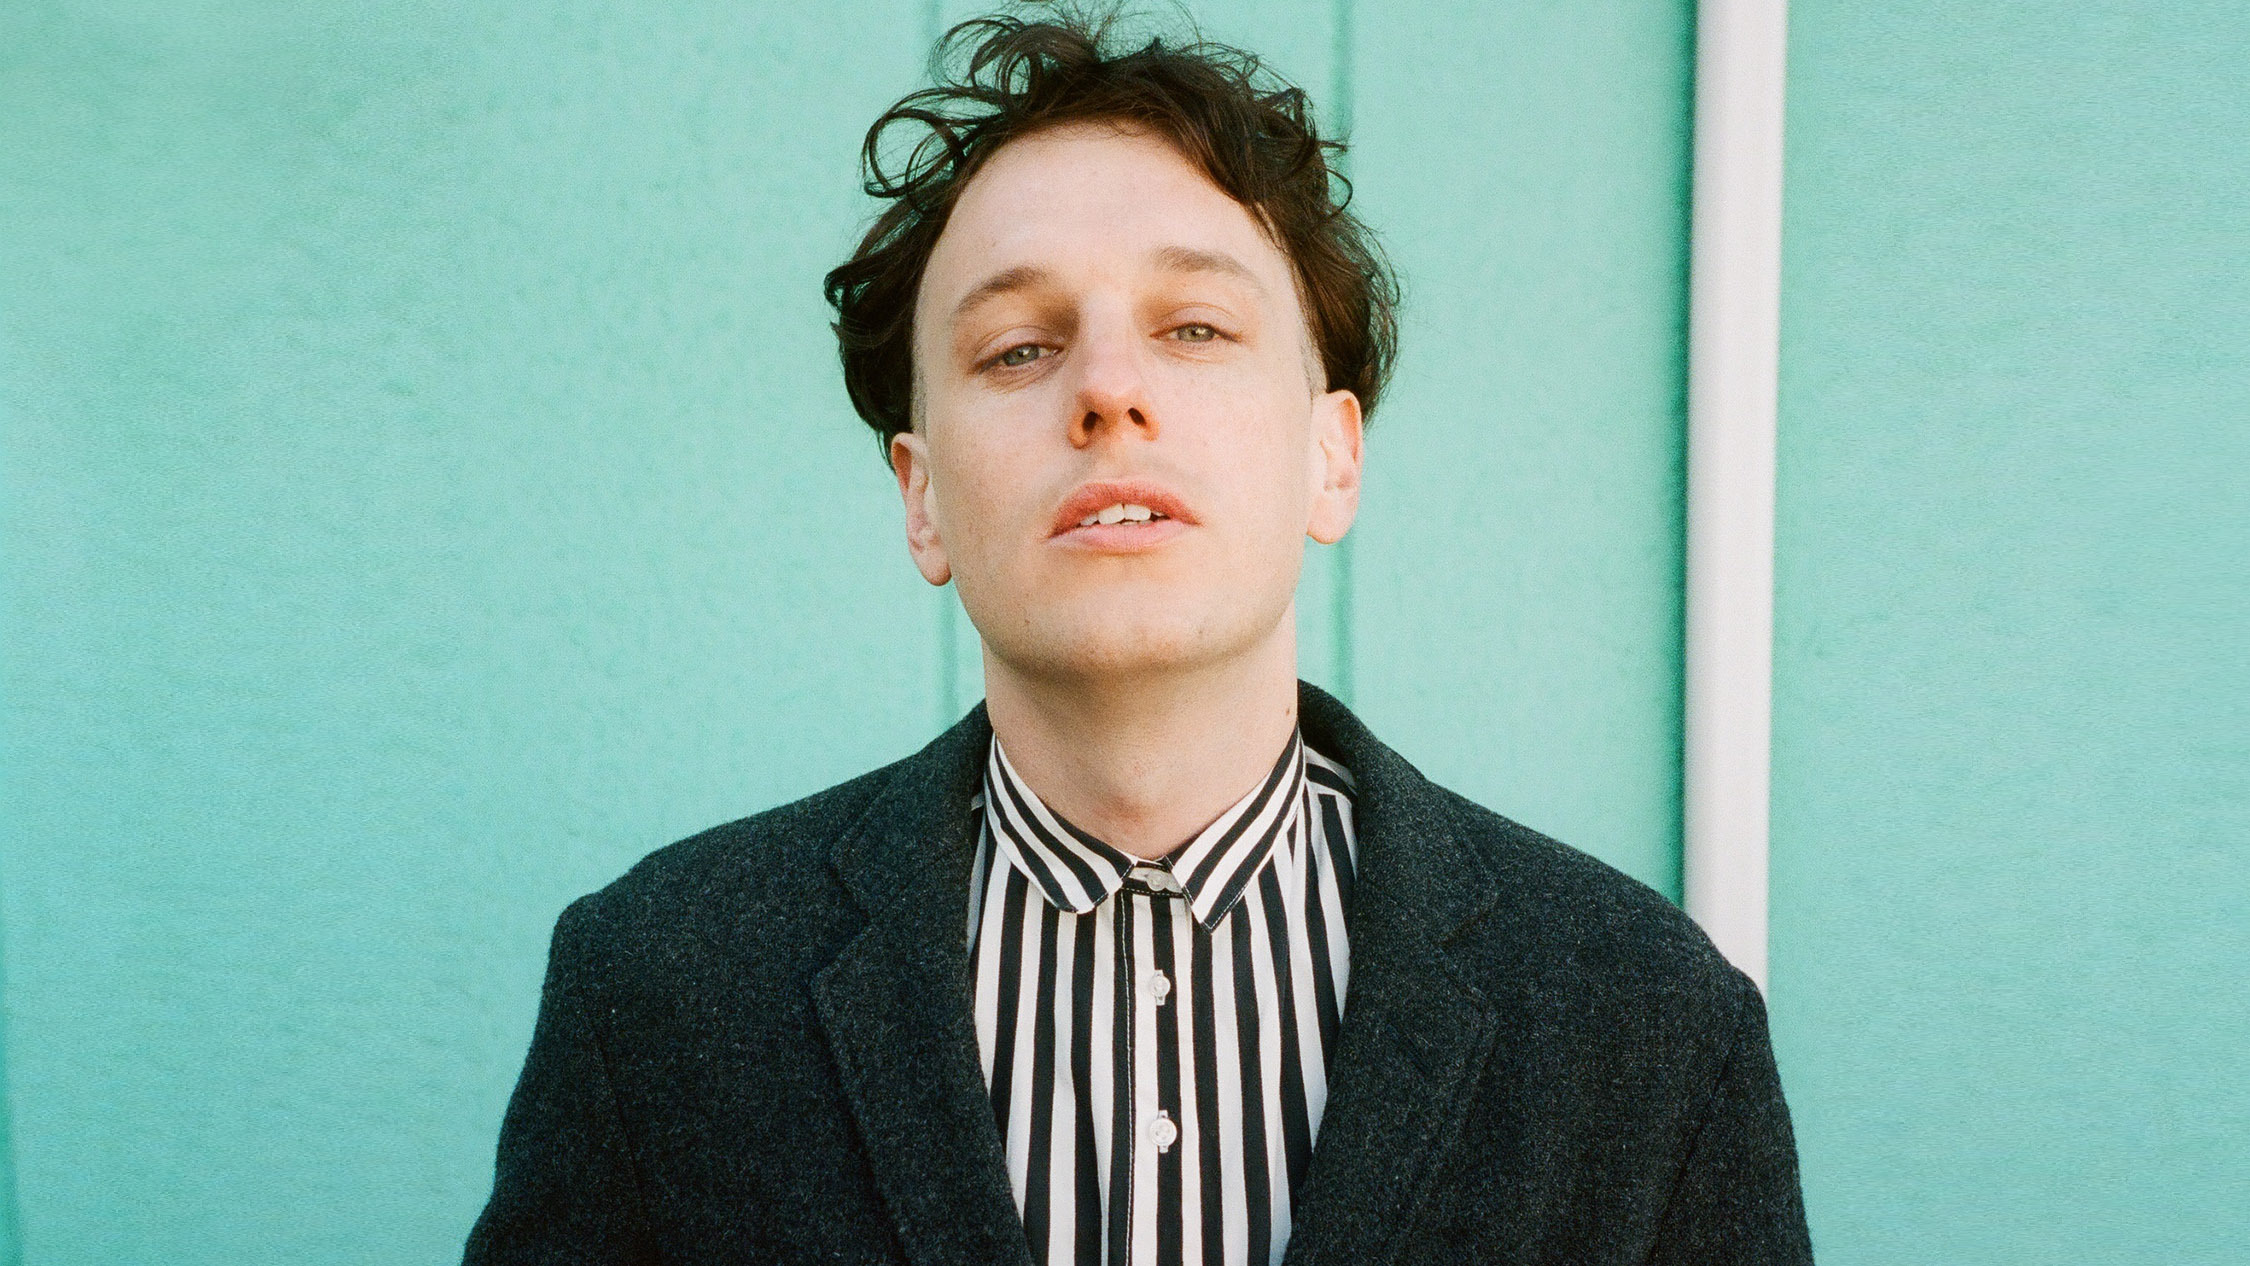 Band member from Methyl Ethel stands in front of a blue wall.